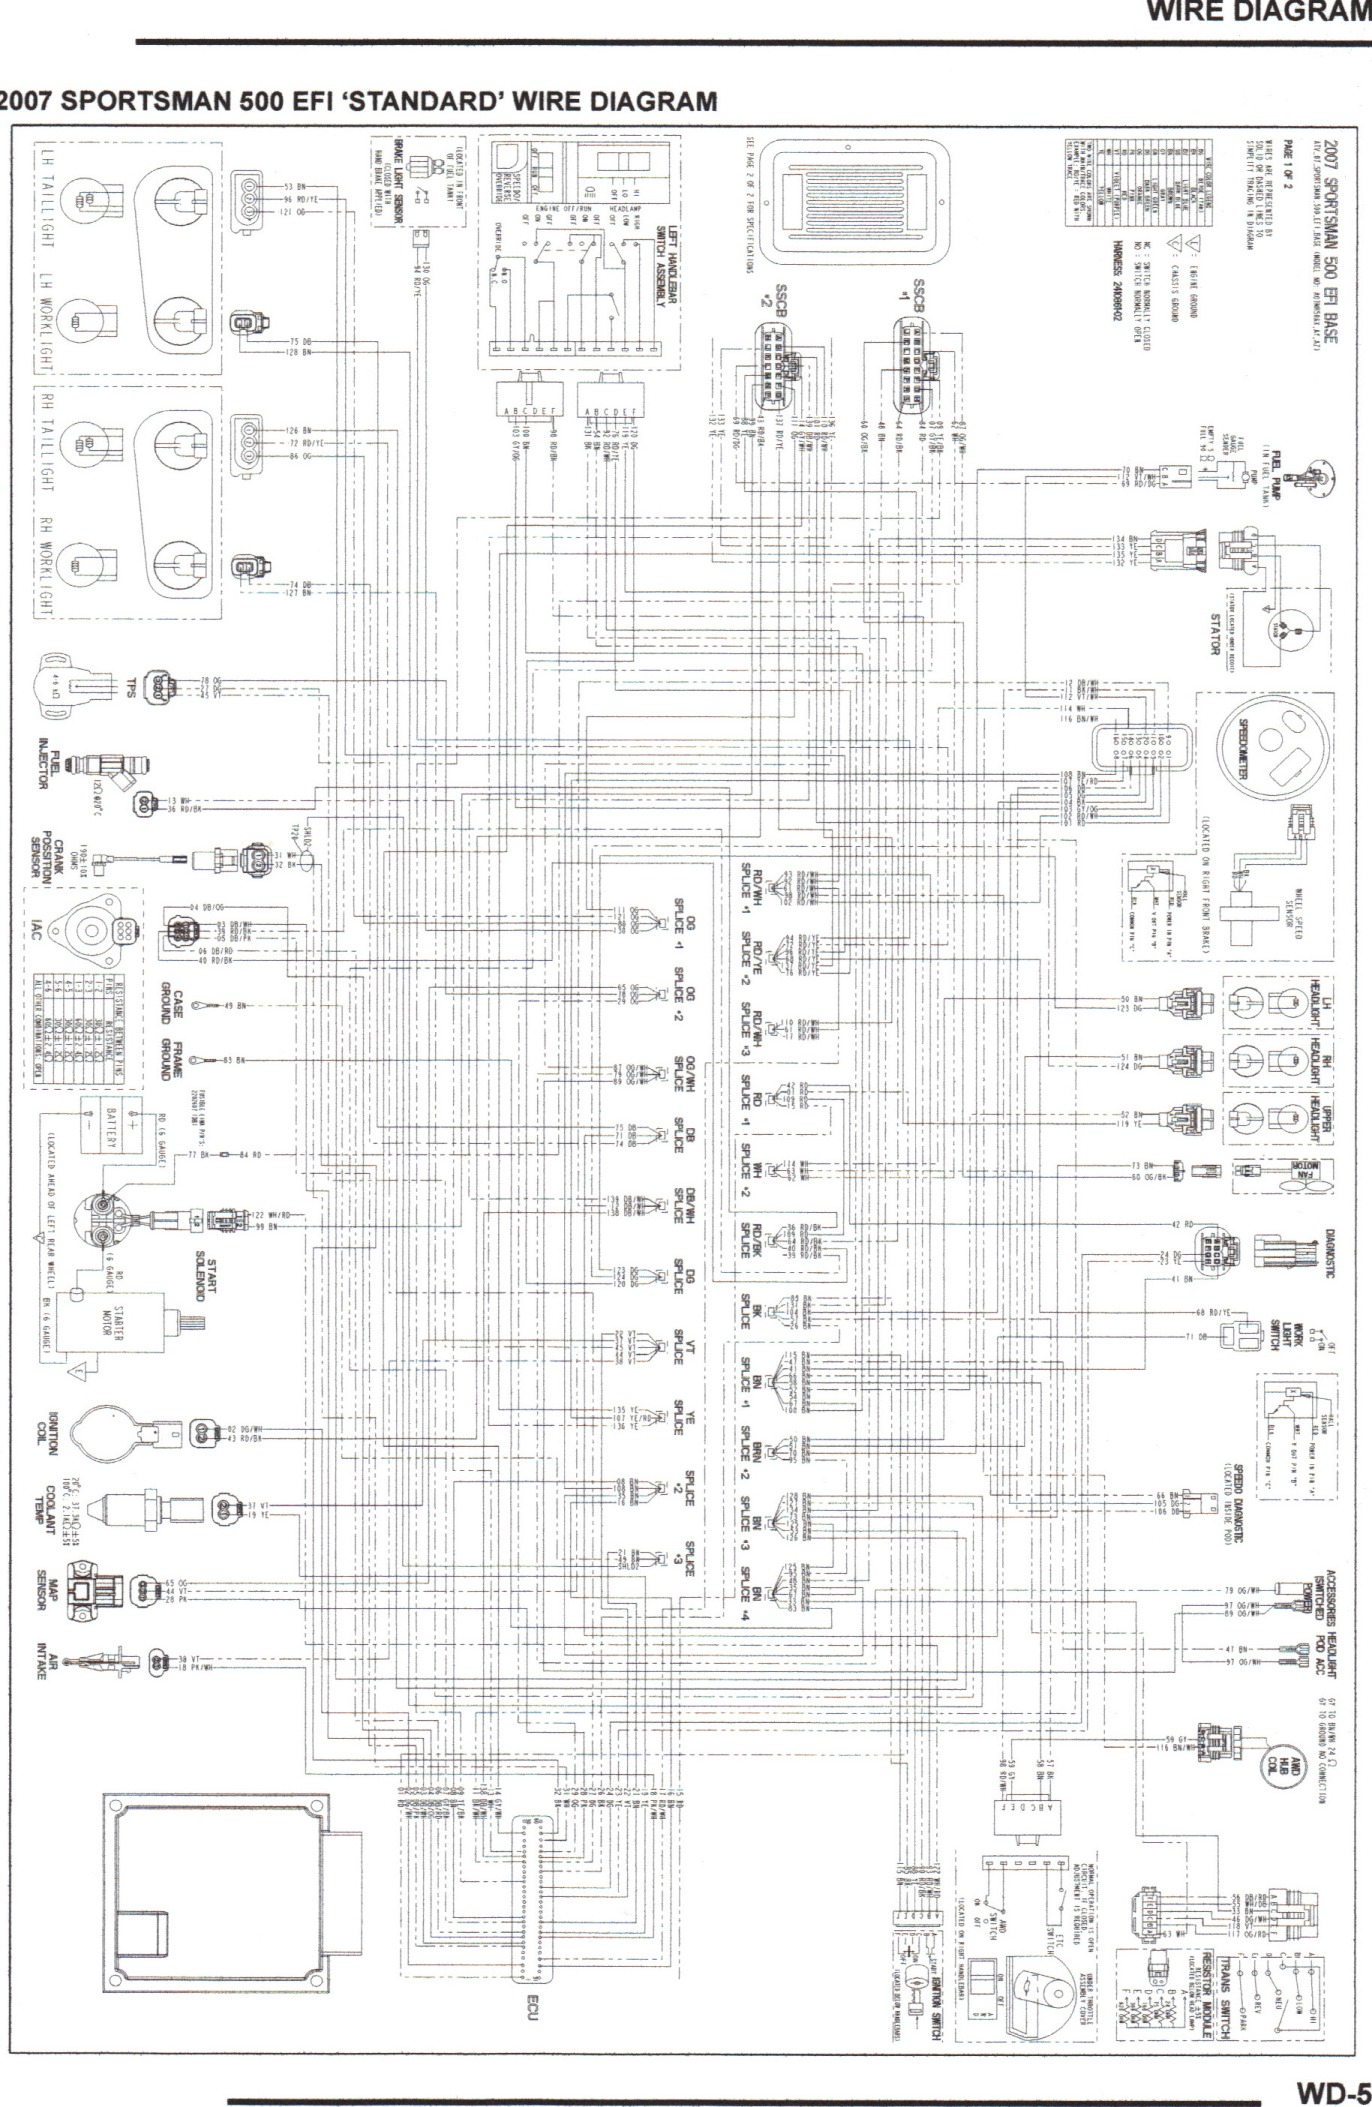 2011 04 02_165302_2010 06 22_205919_500_efi_wiring_diagram polaris sportsman 90 wiring diagram polaris free wiring diagrams 2001 polaris sportsman 90 wiring diagram at readyjetset.co